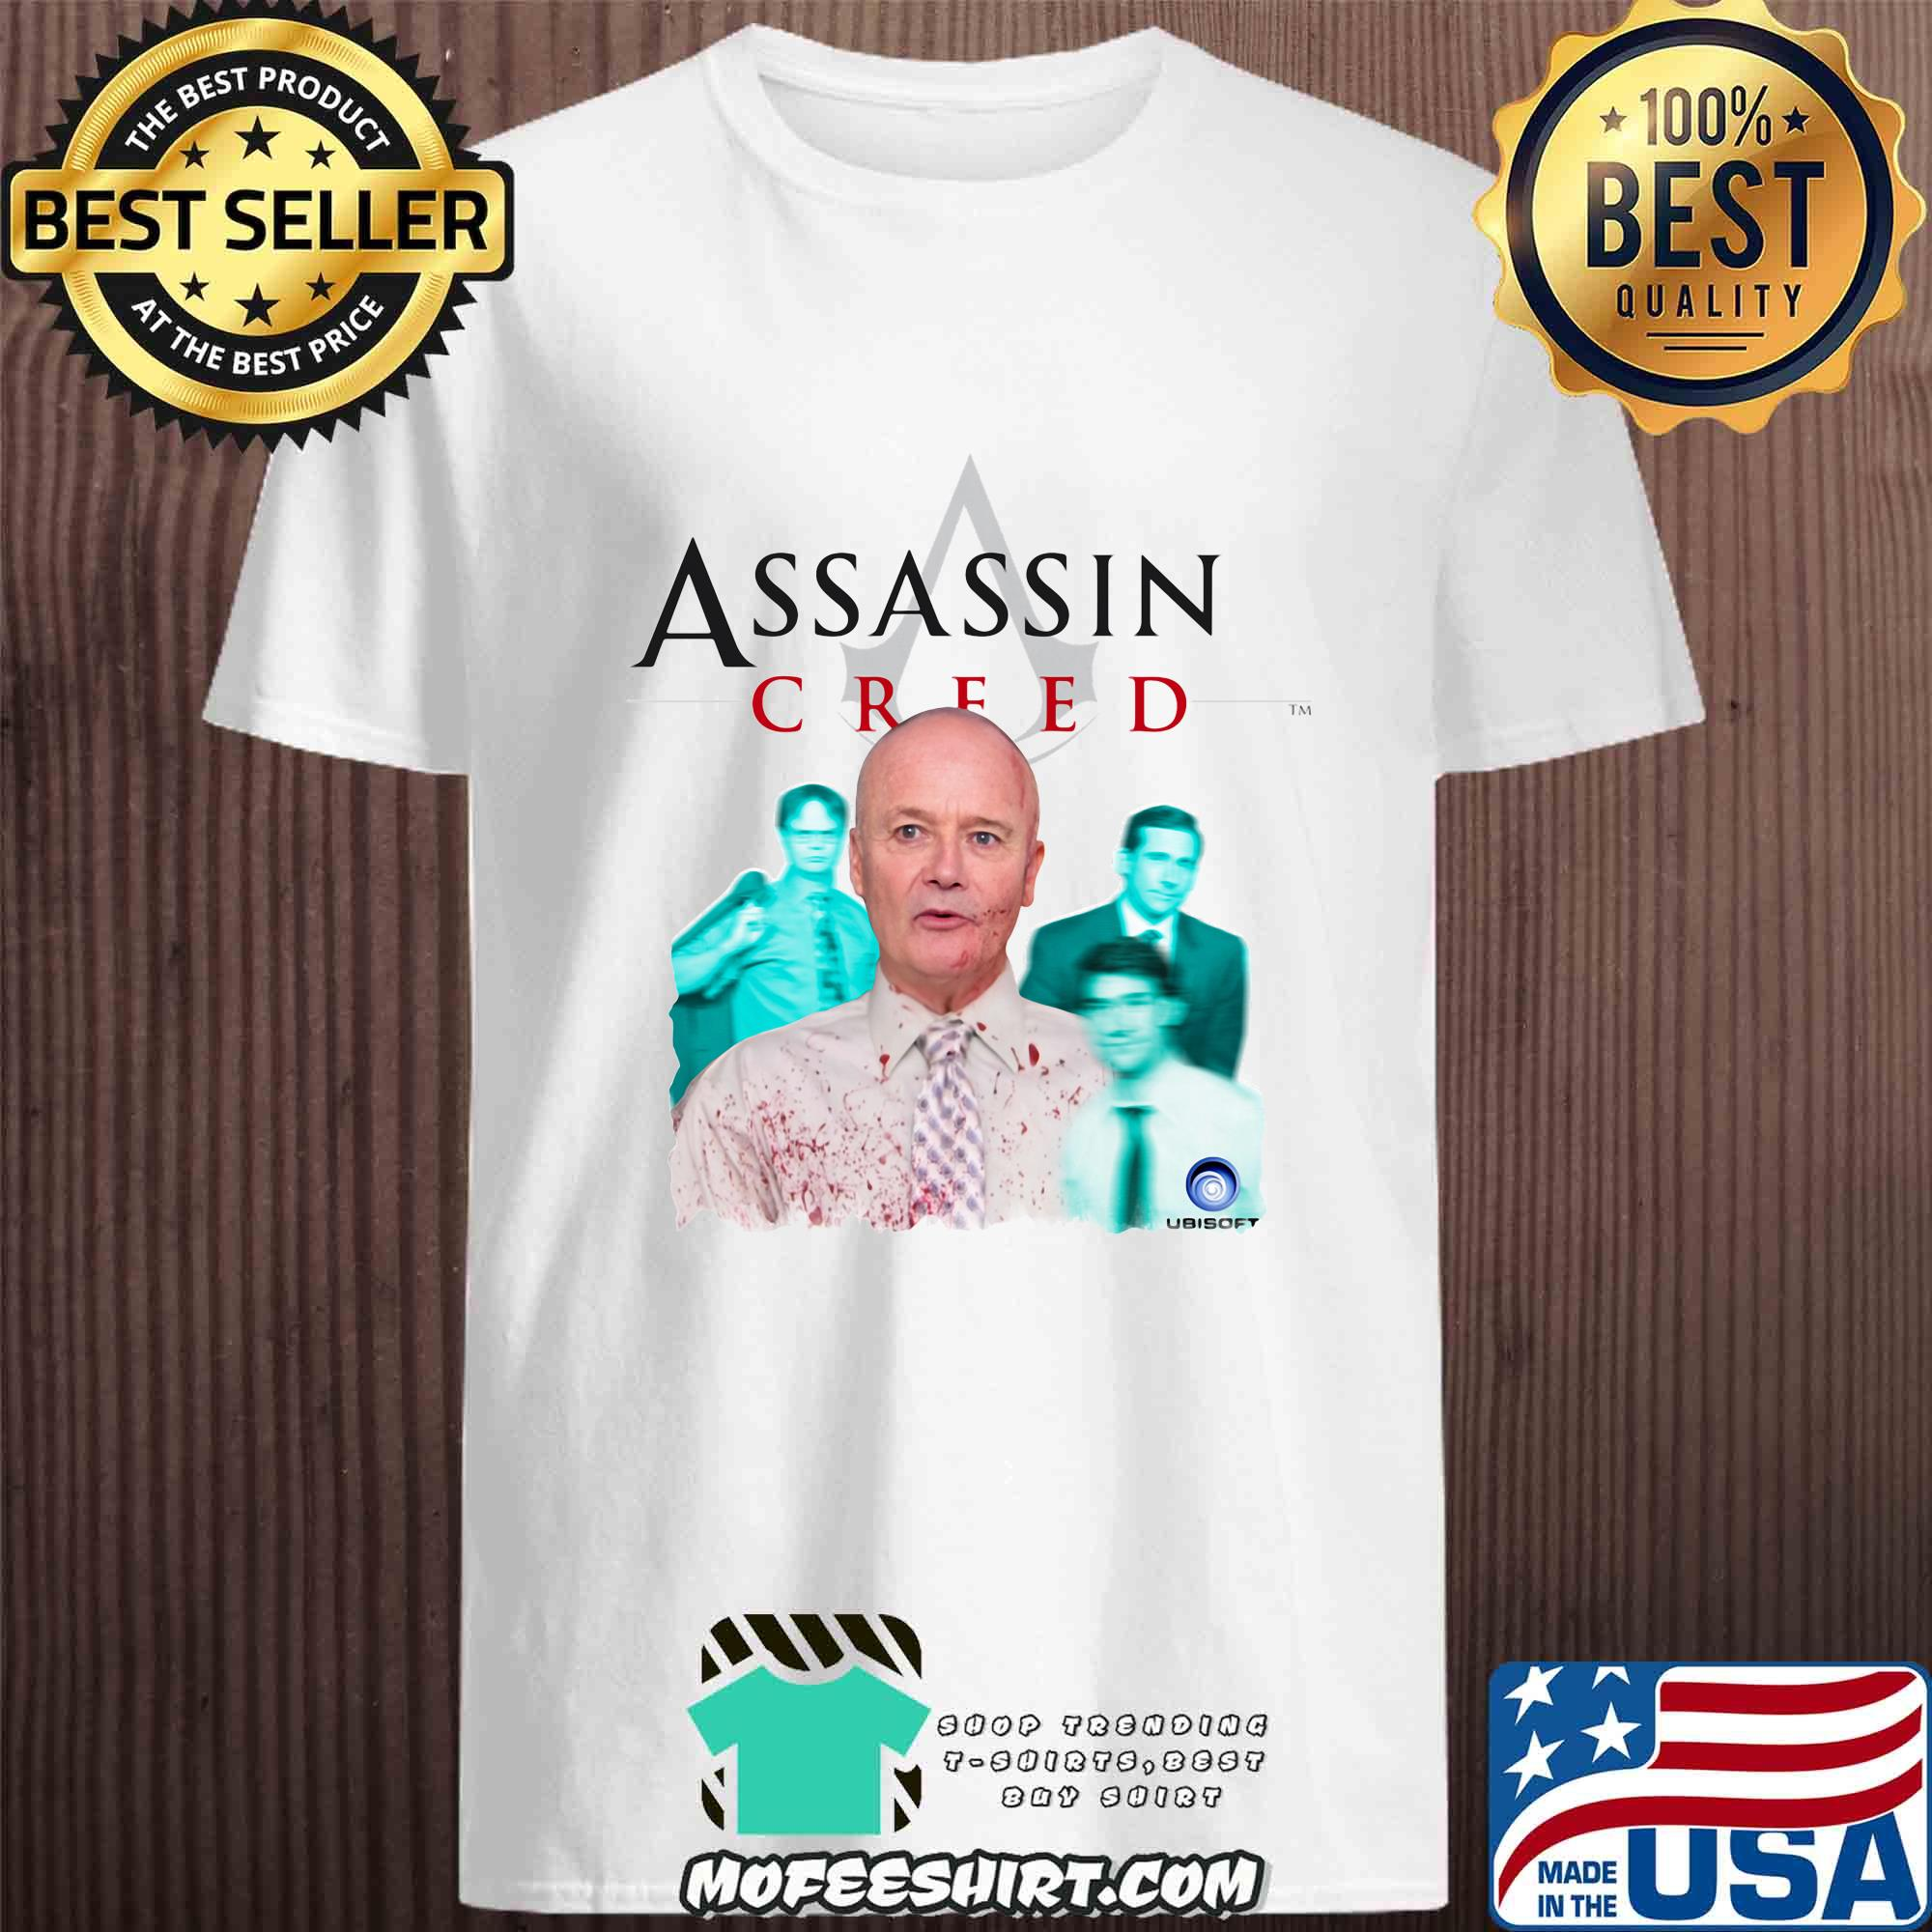 The Office Assassin Creed shirt